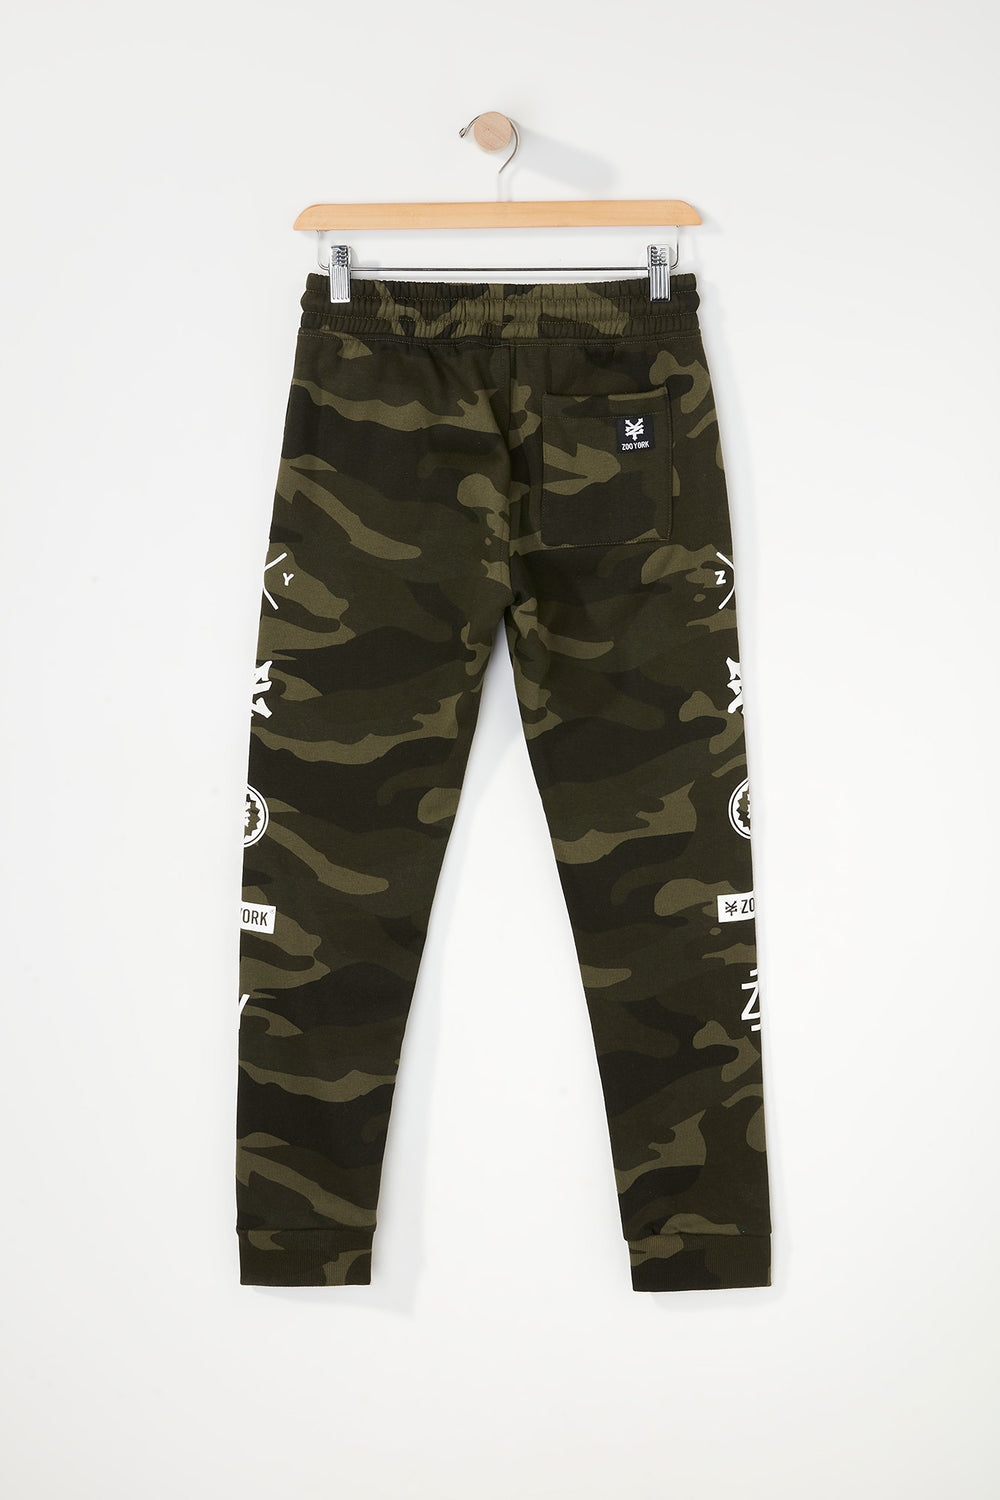 Joggers Camouflage Zoo York Junior Camoufle